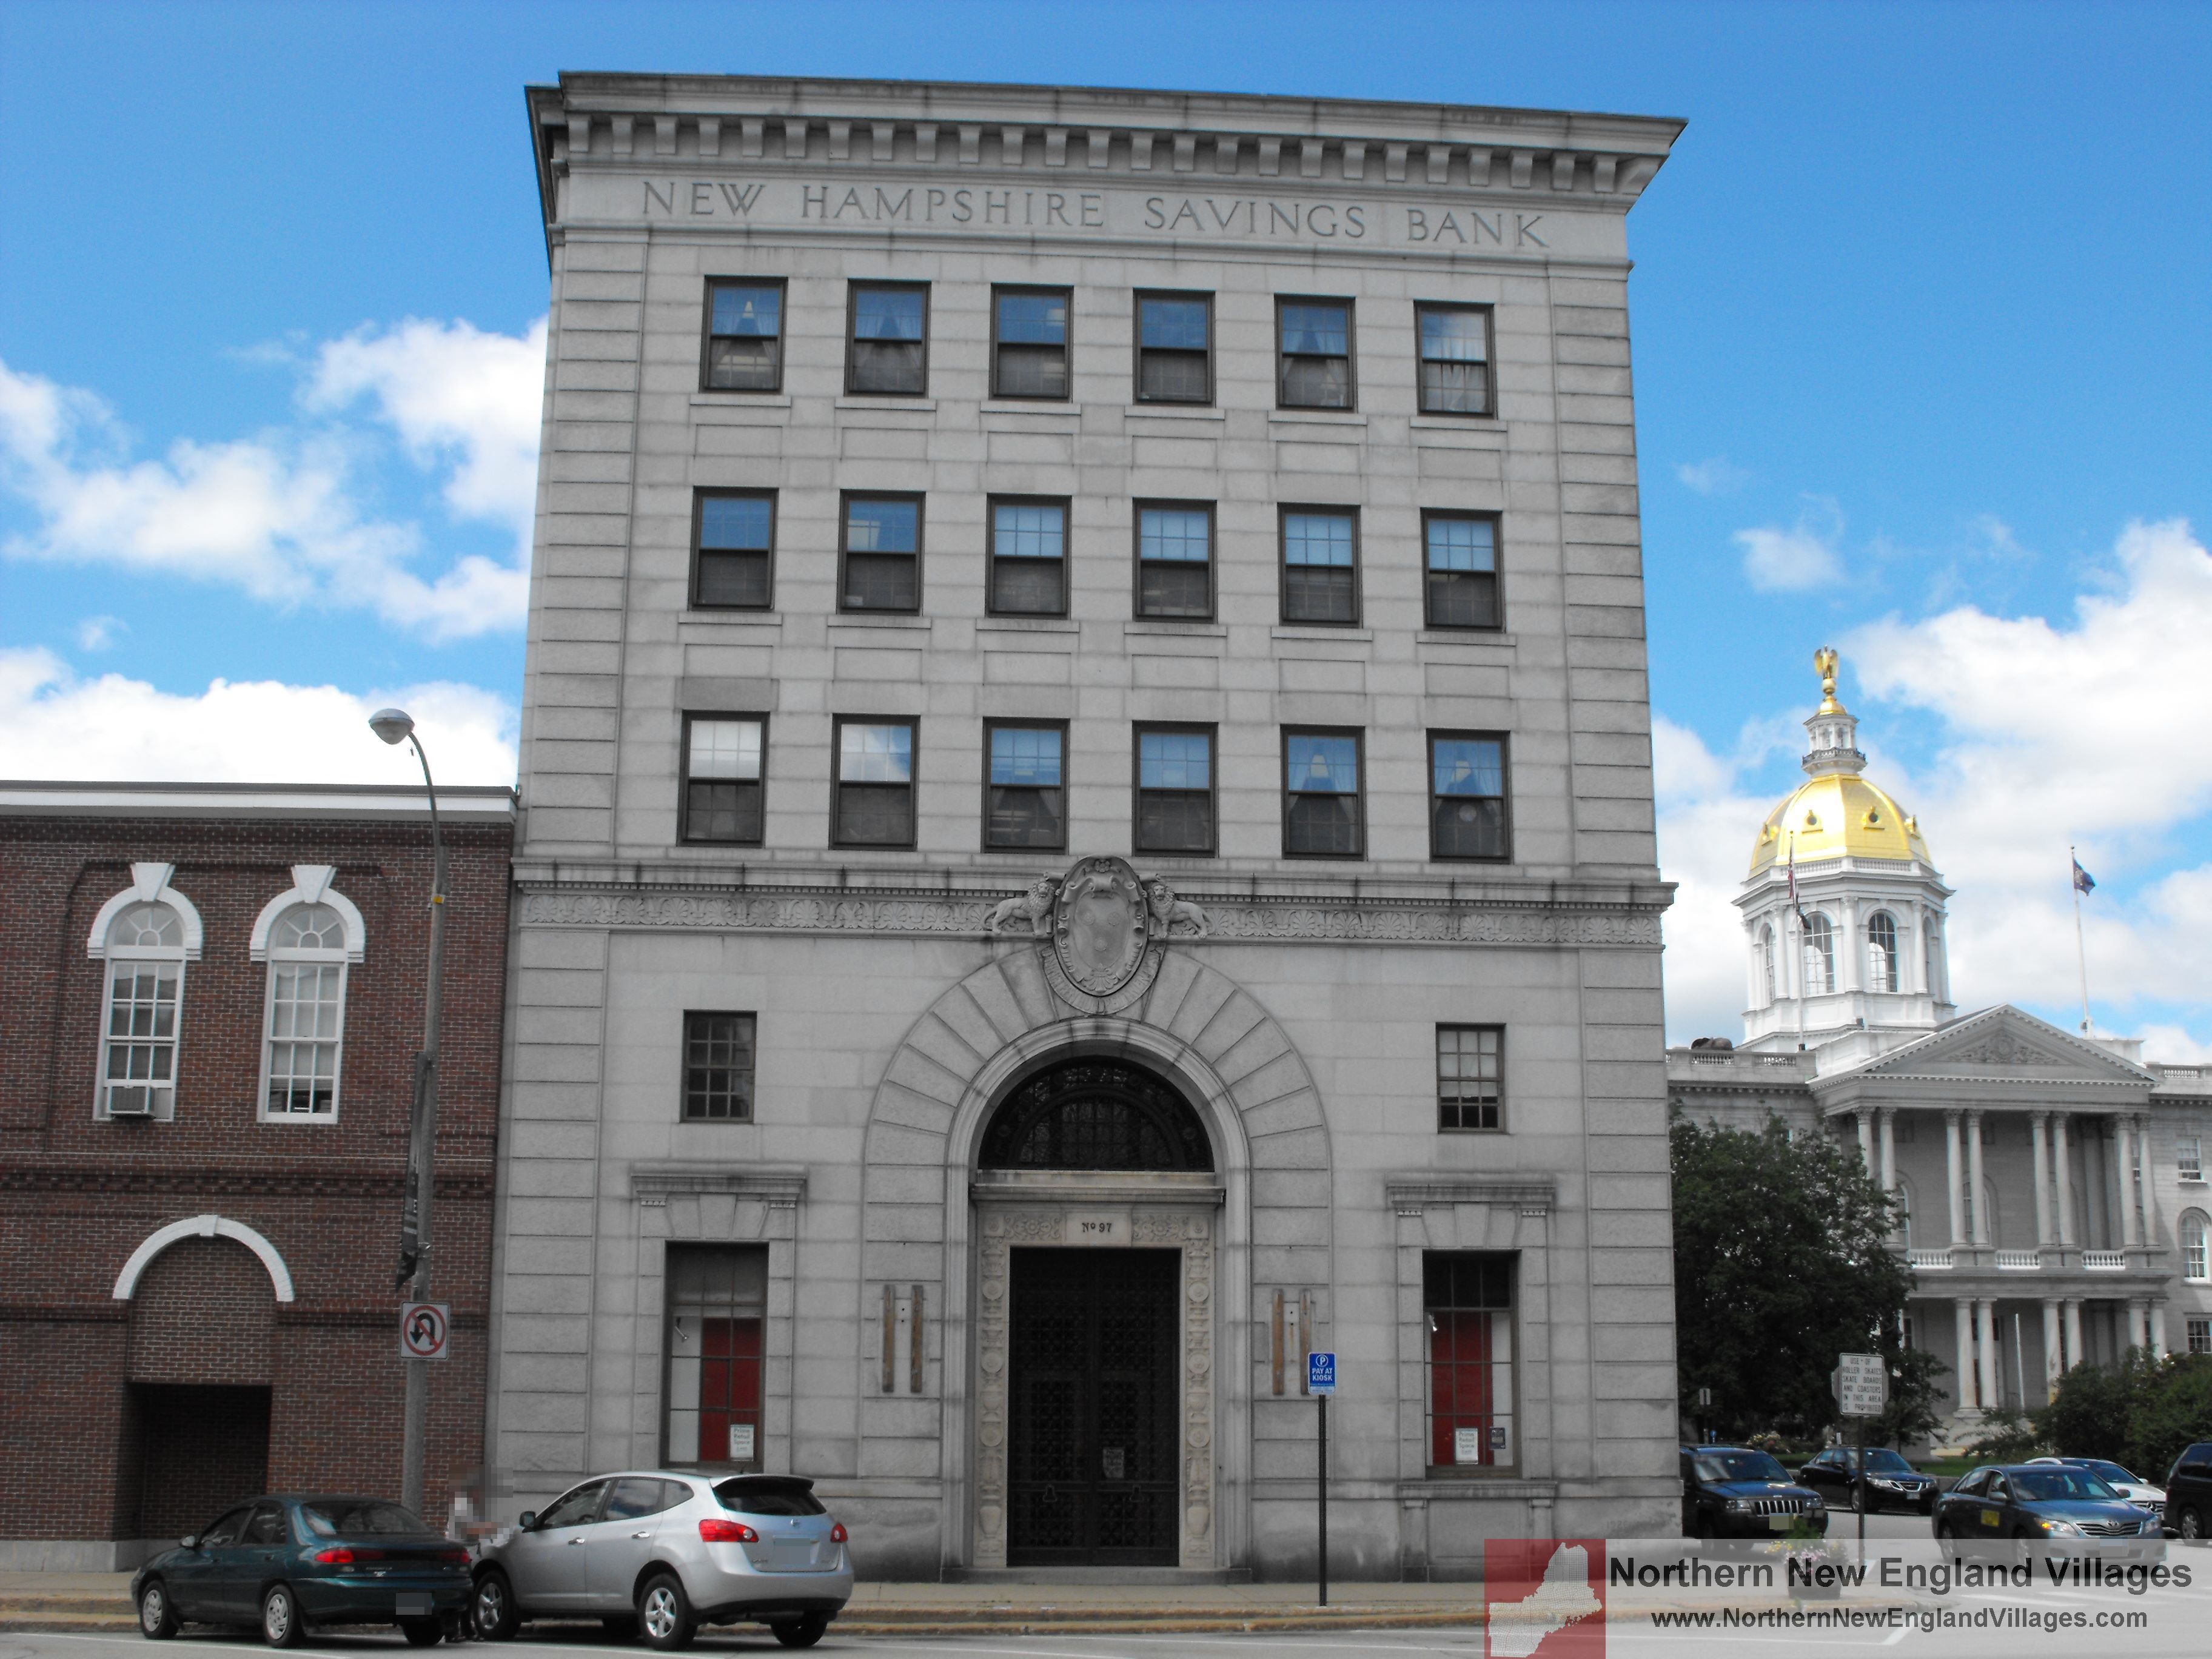 Banks Concord Nh >> Picture Of New Hampshire Savings Bank Building In Concord